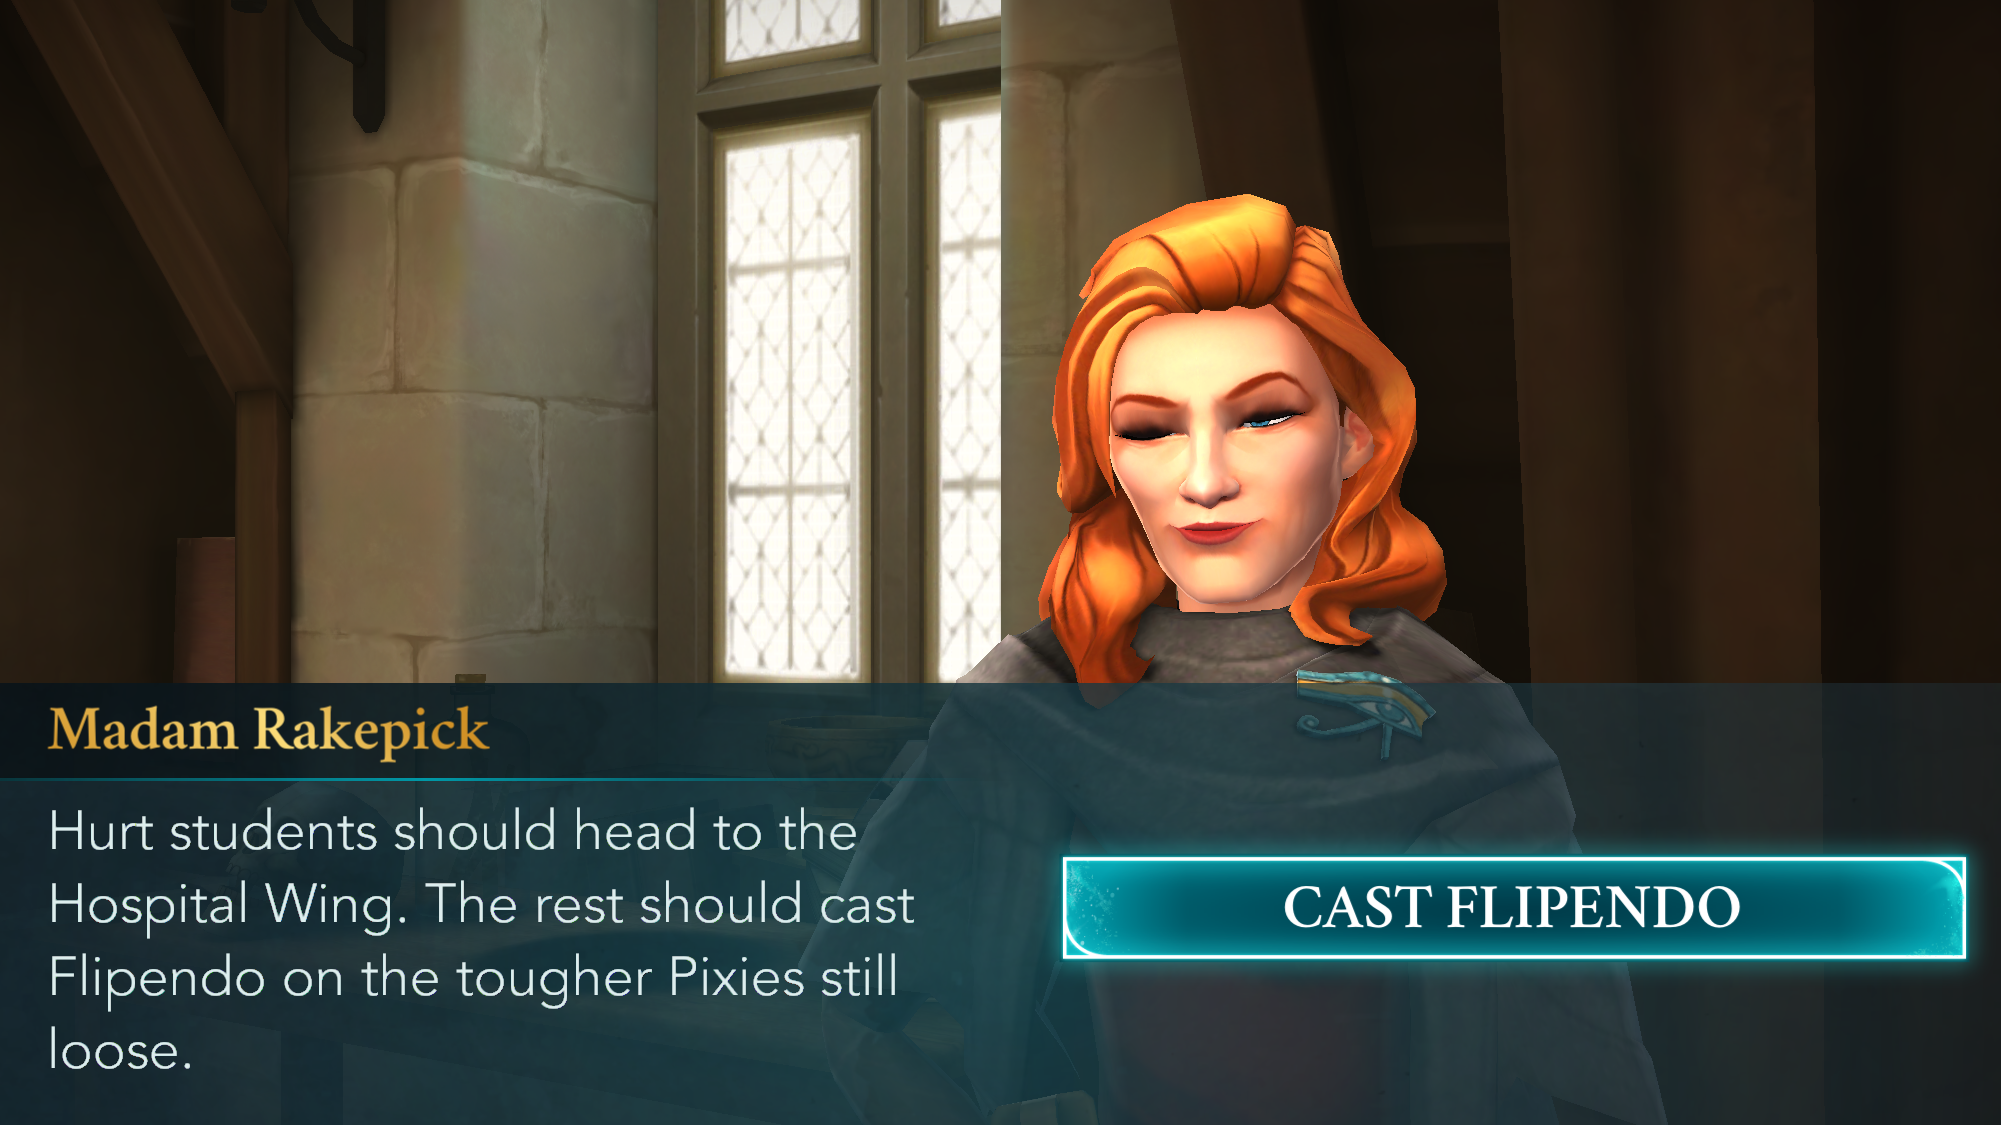 Pin By Camilla Tilly On Harry Potter Hogwarts Mystery Game Hogwarts Mystery Harry Potter Hogwarts Mystery Games